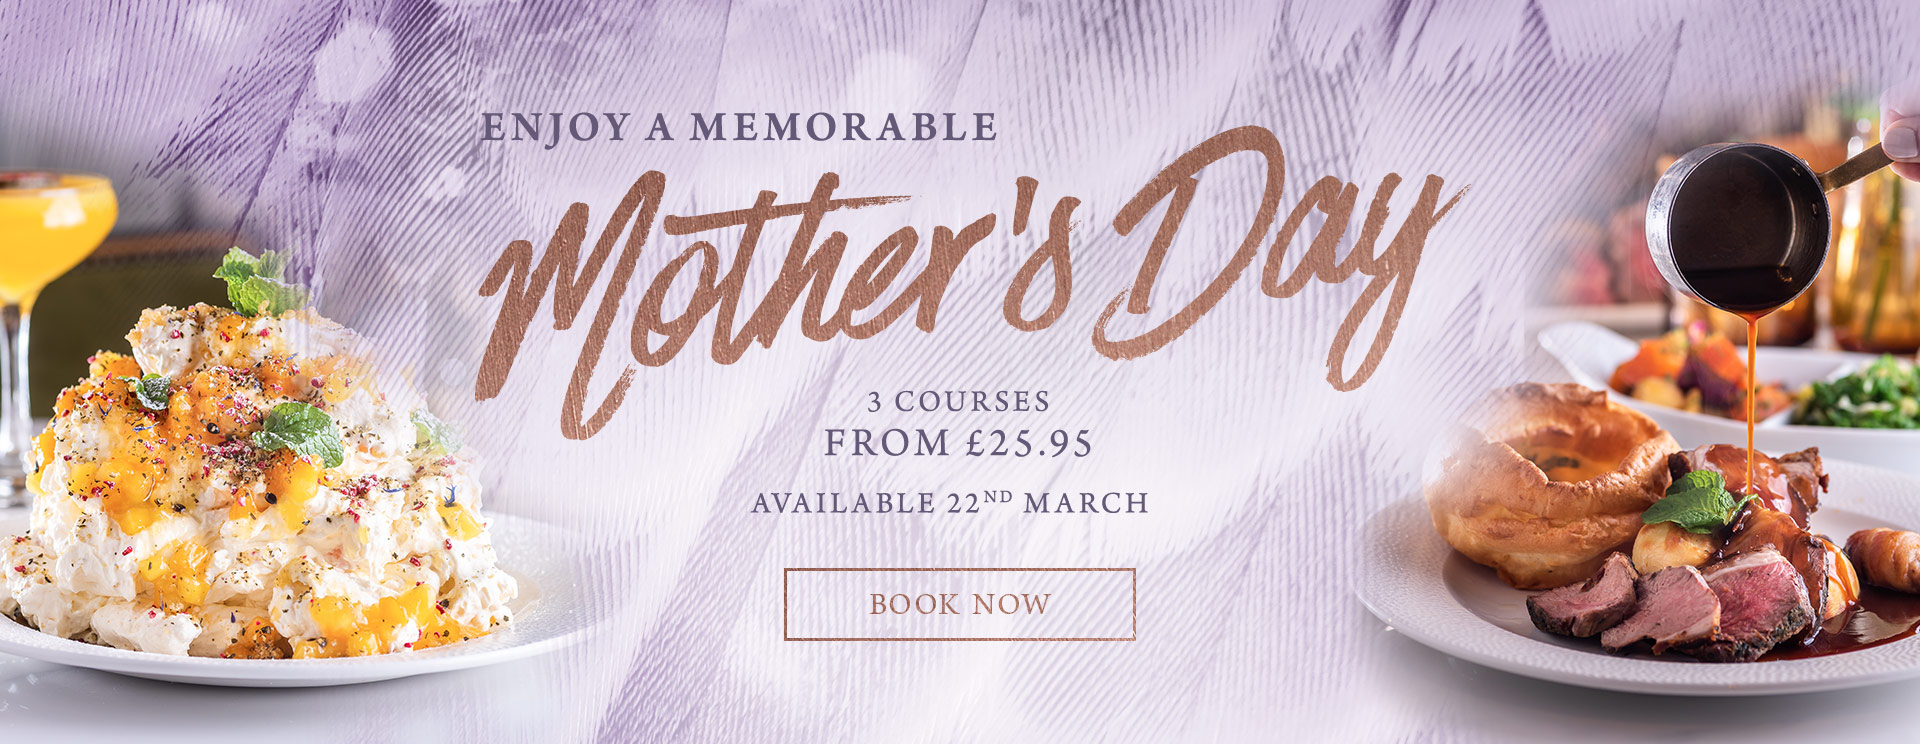 Mother's Day 2019 at The Rambler's Rest